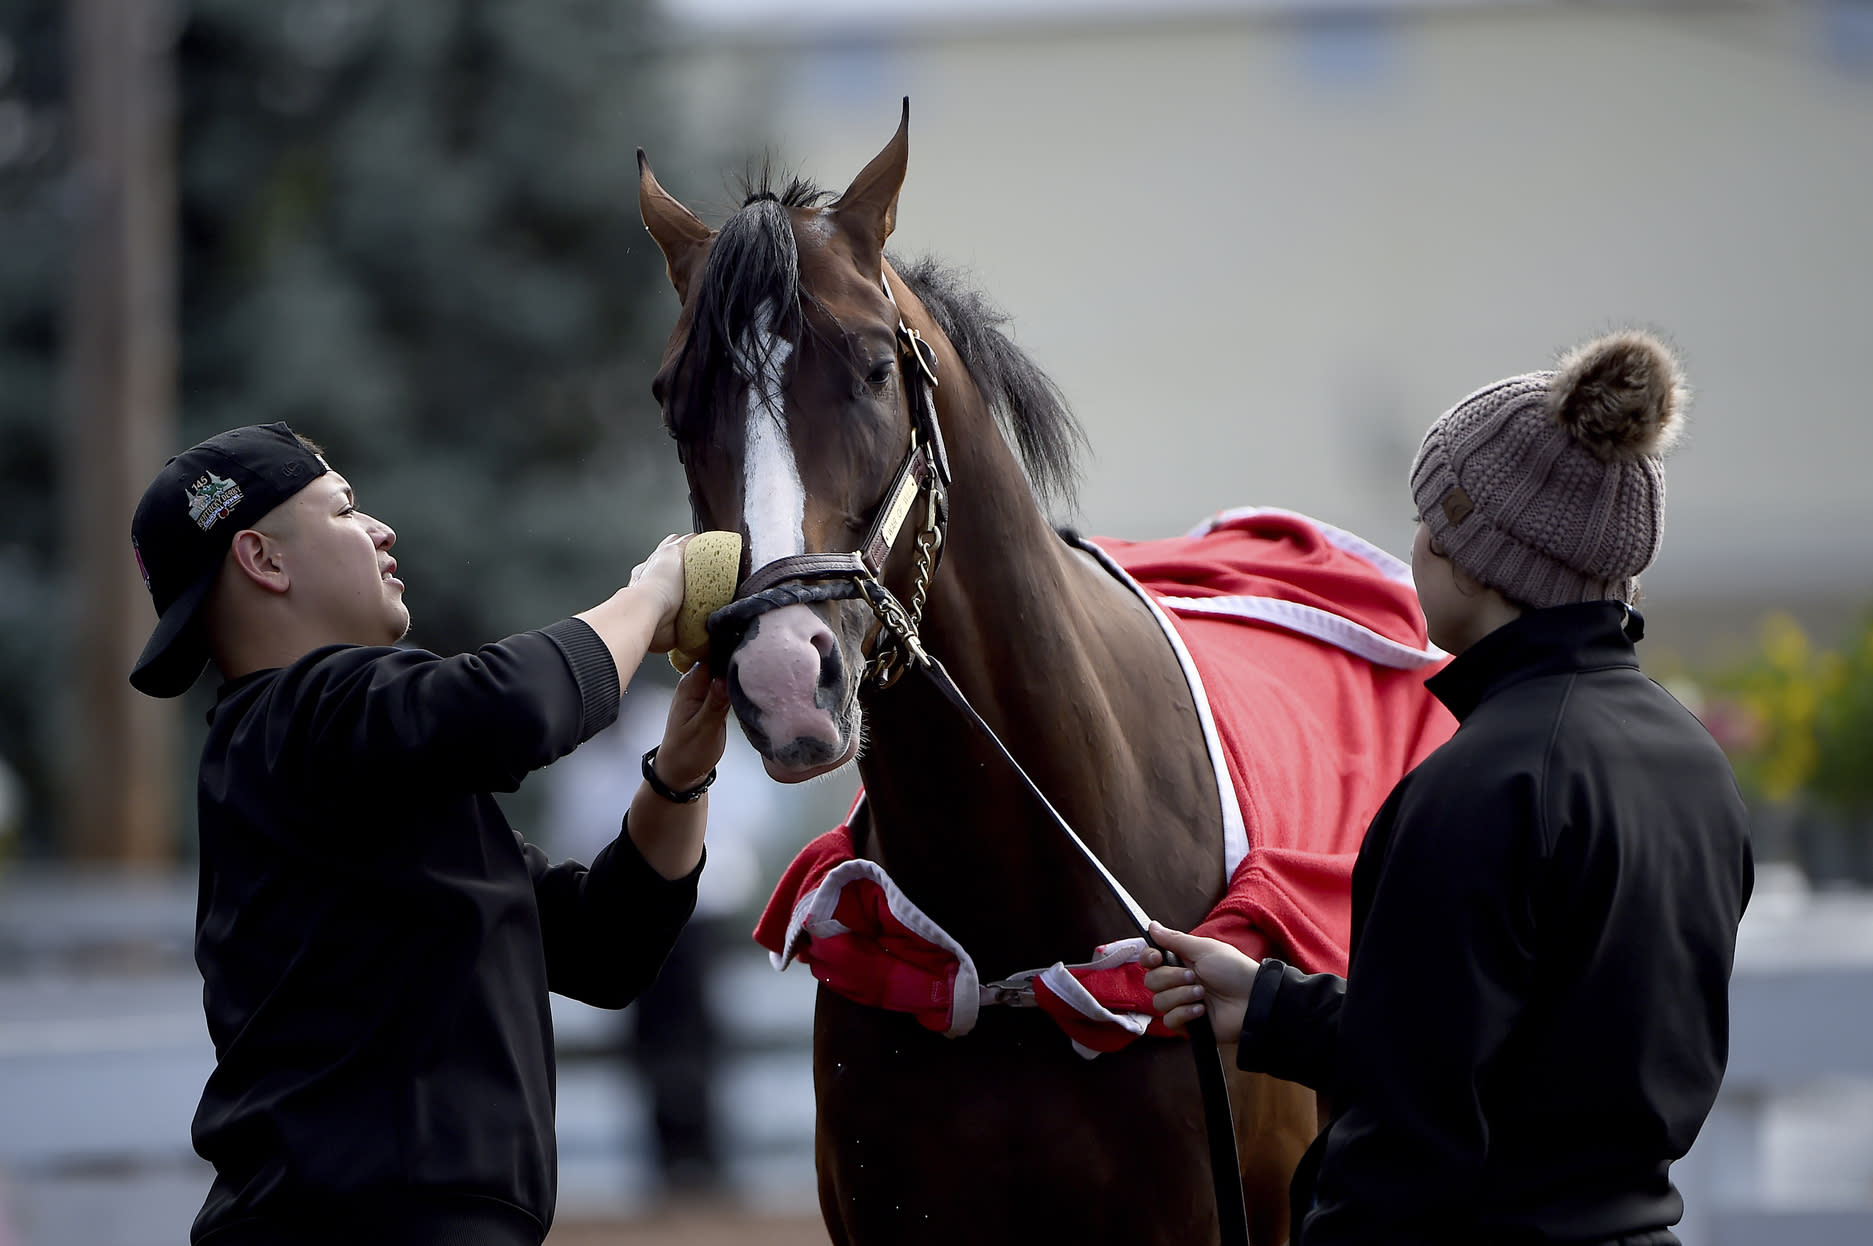 Preakness contender War of Will is washed outside of the barn, Tuesday, May 14, 2019, at Pimlico Race Course in Baltimore. The Preakness Stakes horse race is scheduled to take place Saturday, May 18. (AP Photo/Will Newton)